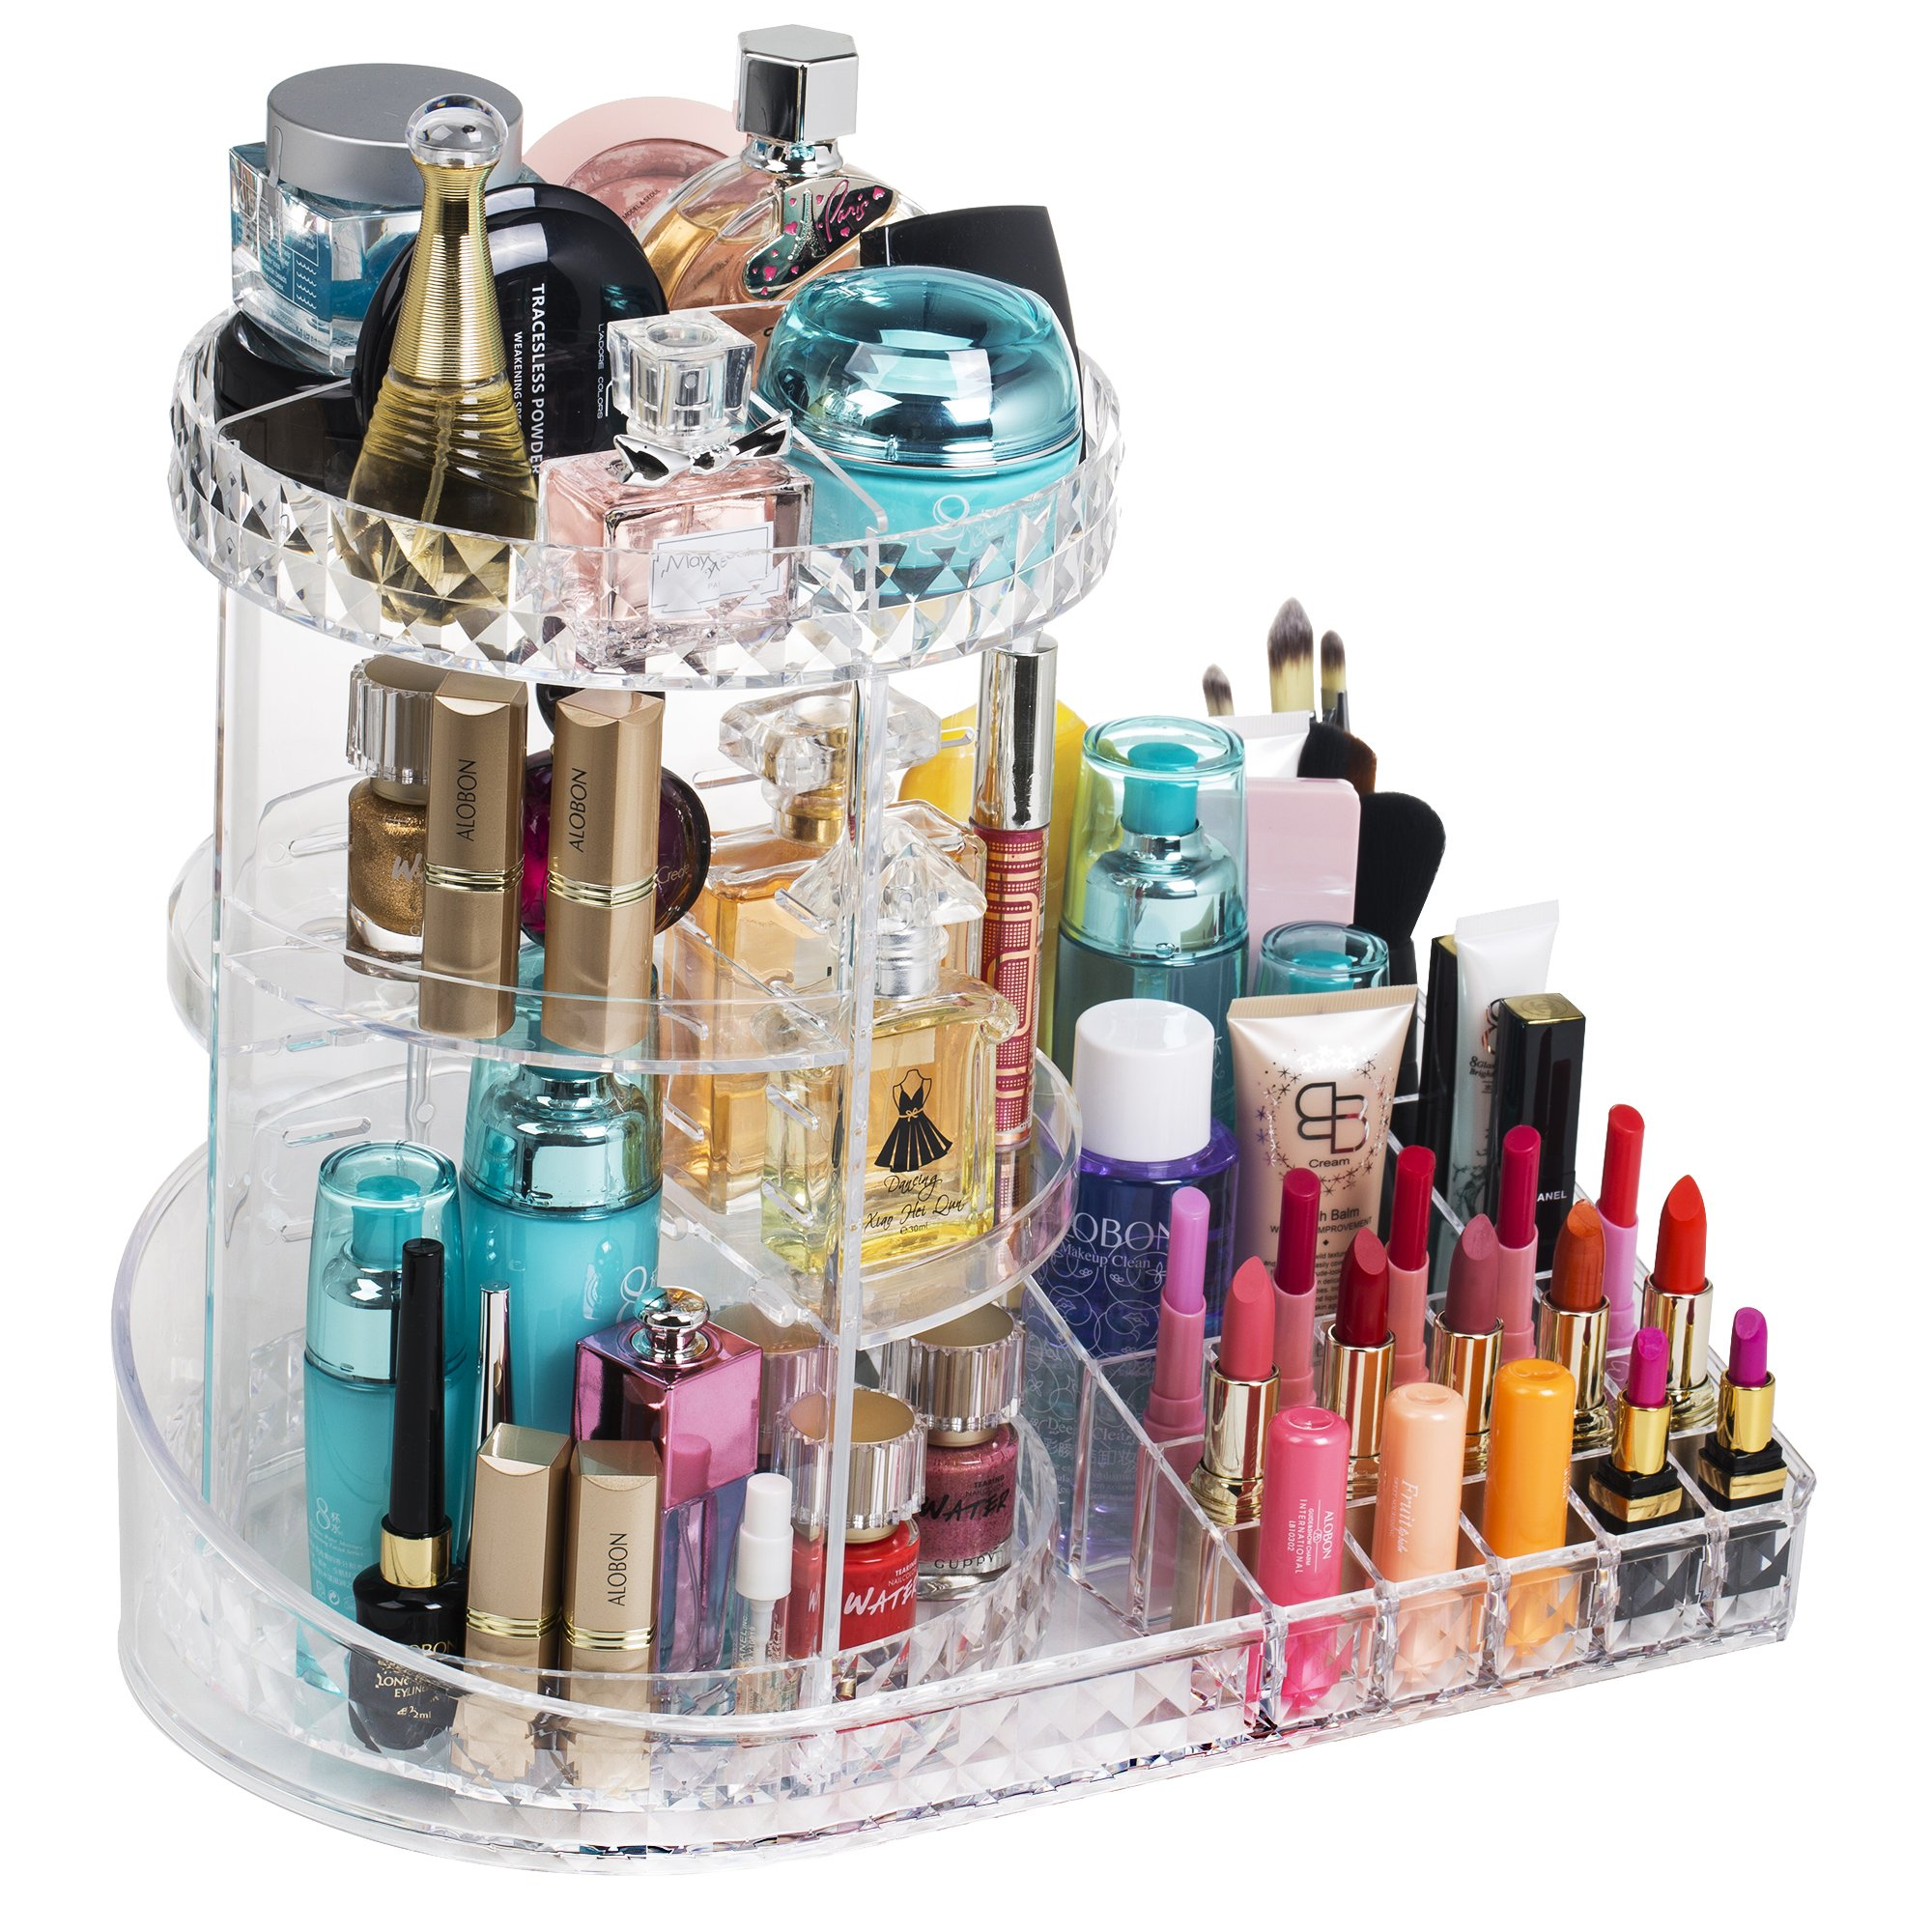 Readaeer 360 Degree Rotating Adjustable Makeup Organizer Cosmetics Lipsticks Perfumes Storage Tray Box (Clear)